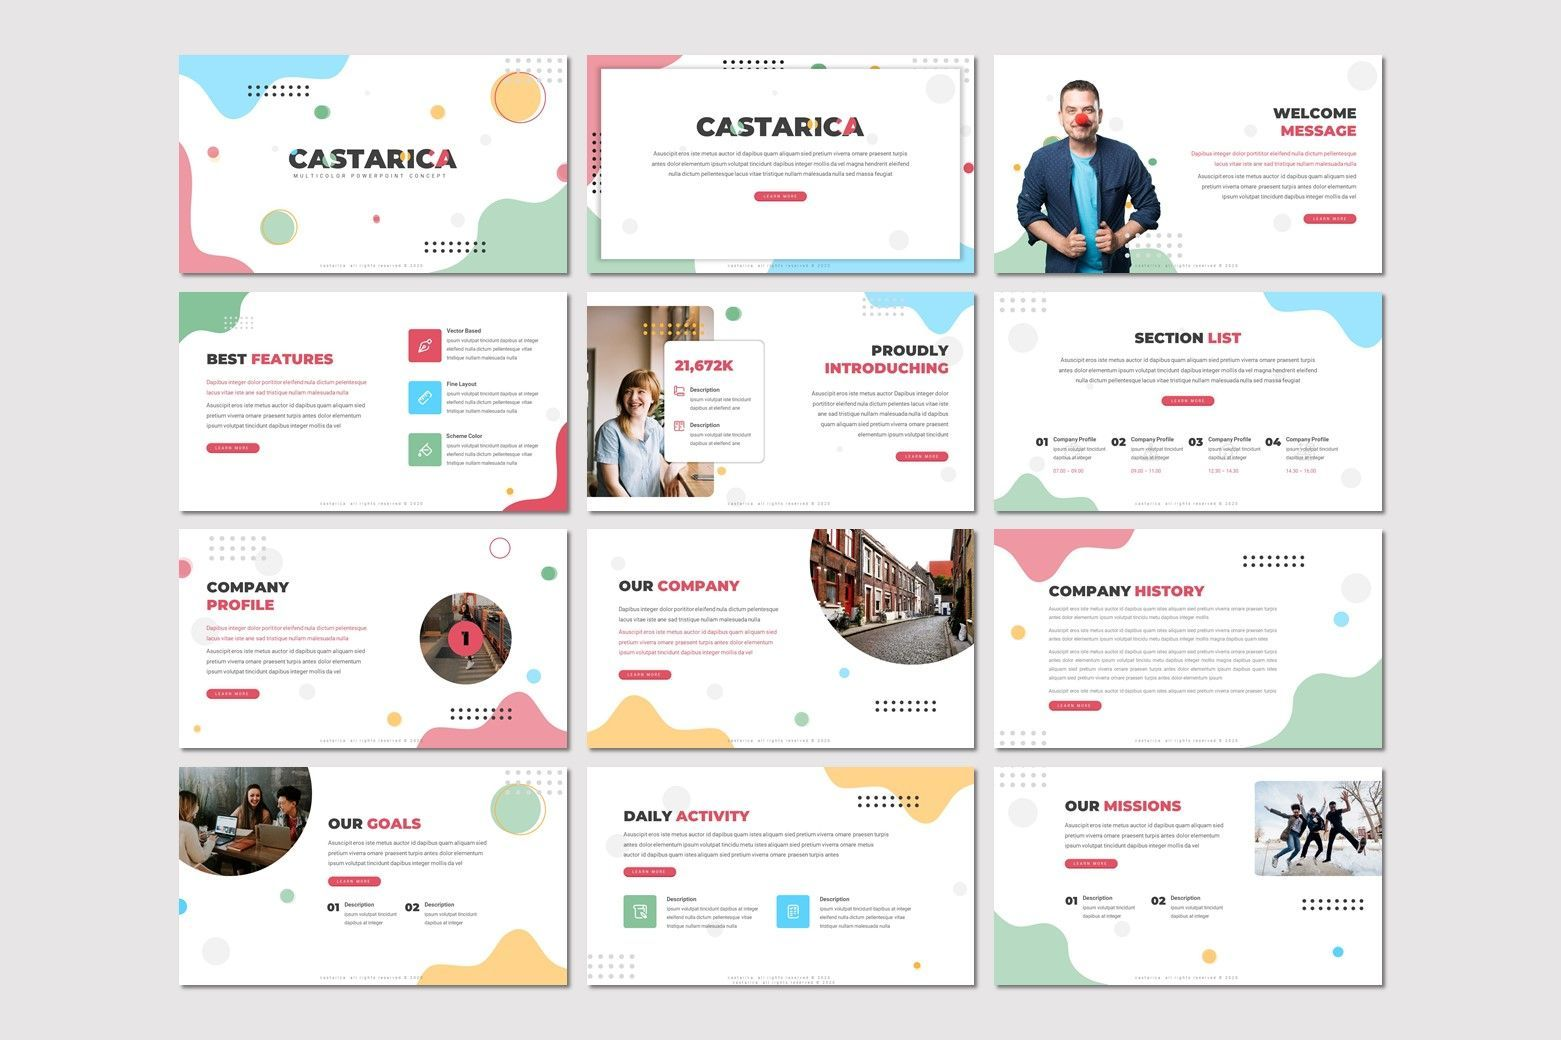 Castarica - Google Slides Template, Slide 2, 07772, Presentation Templates — PoweredTemplate.com